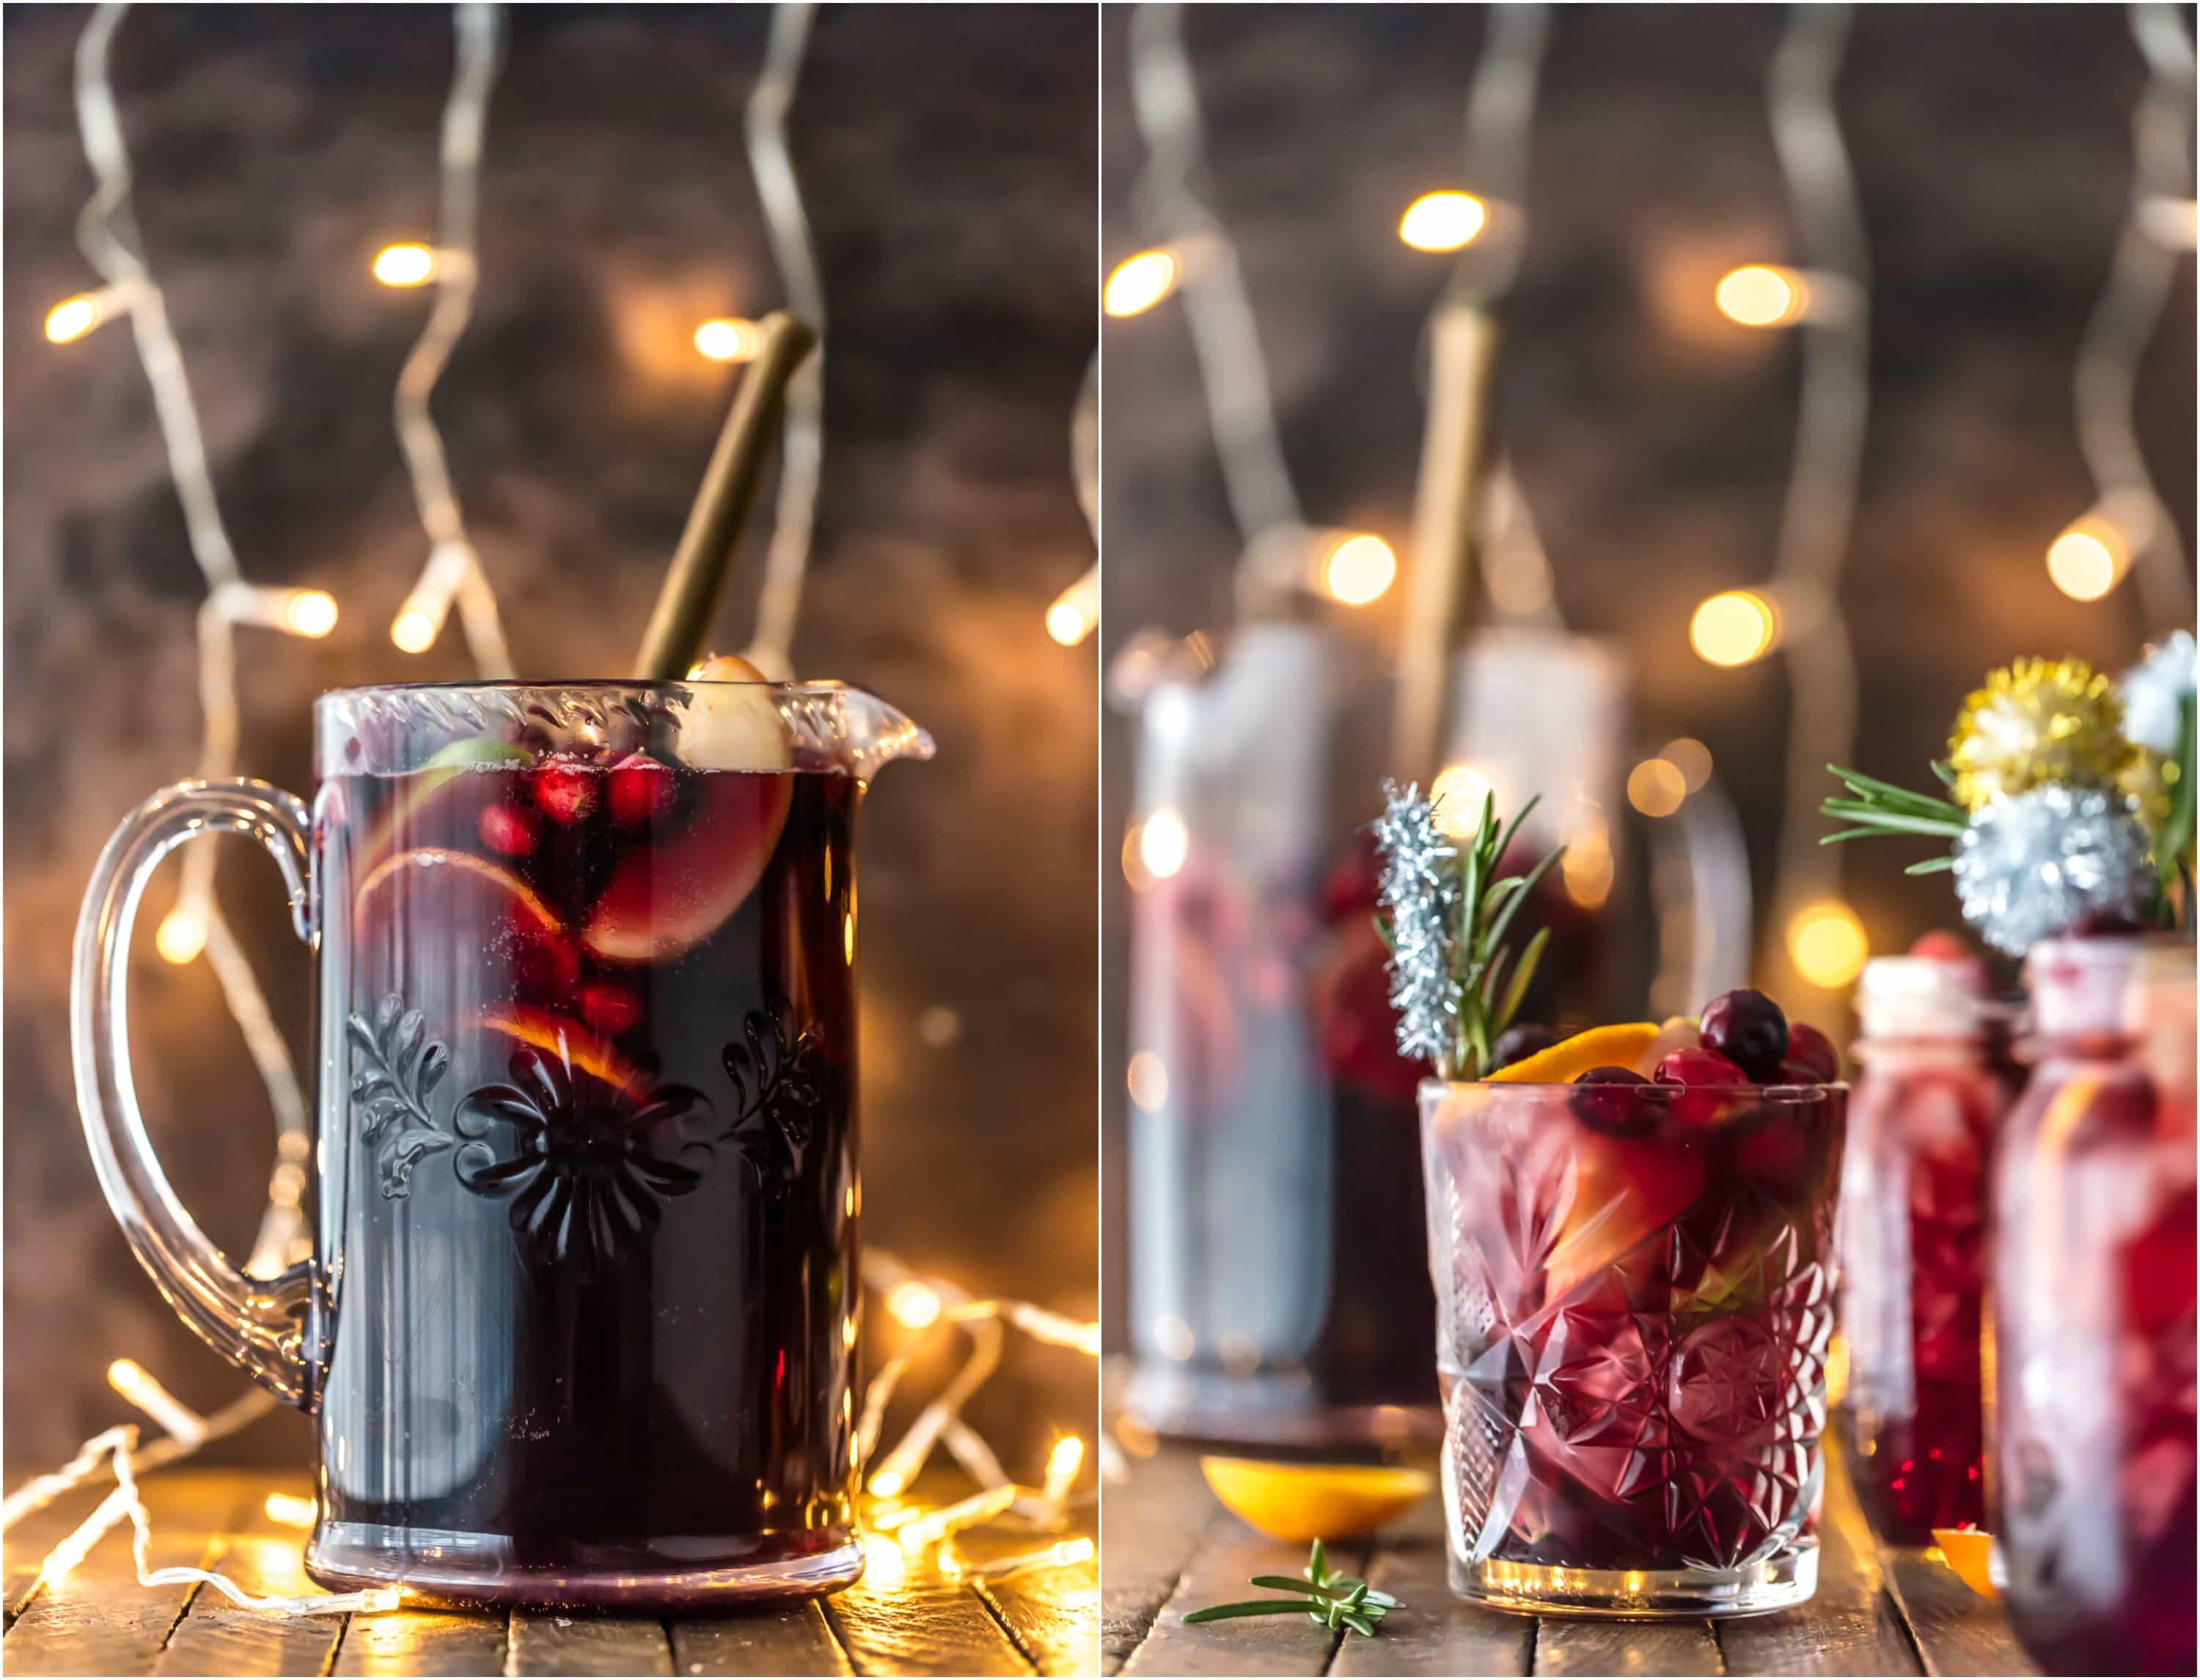 Pitcher of holiday sangria and glasses of sangria in front of string lights